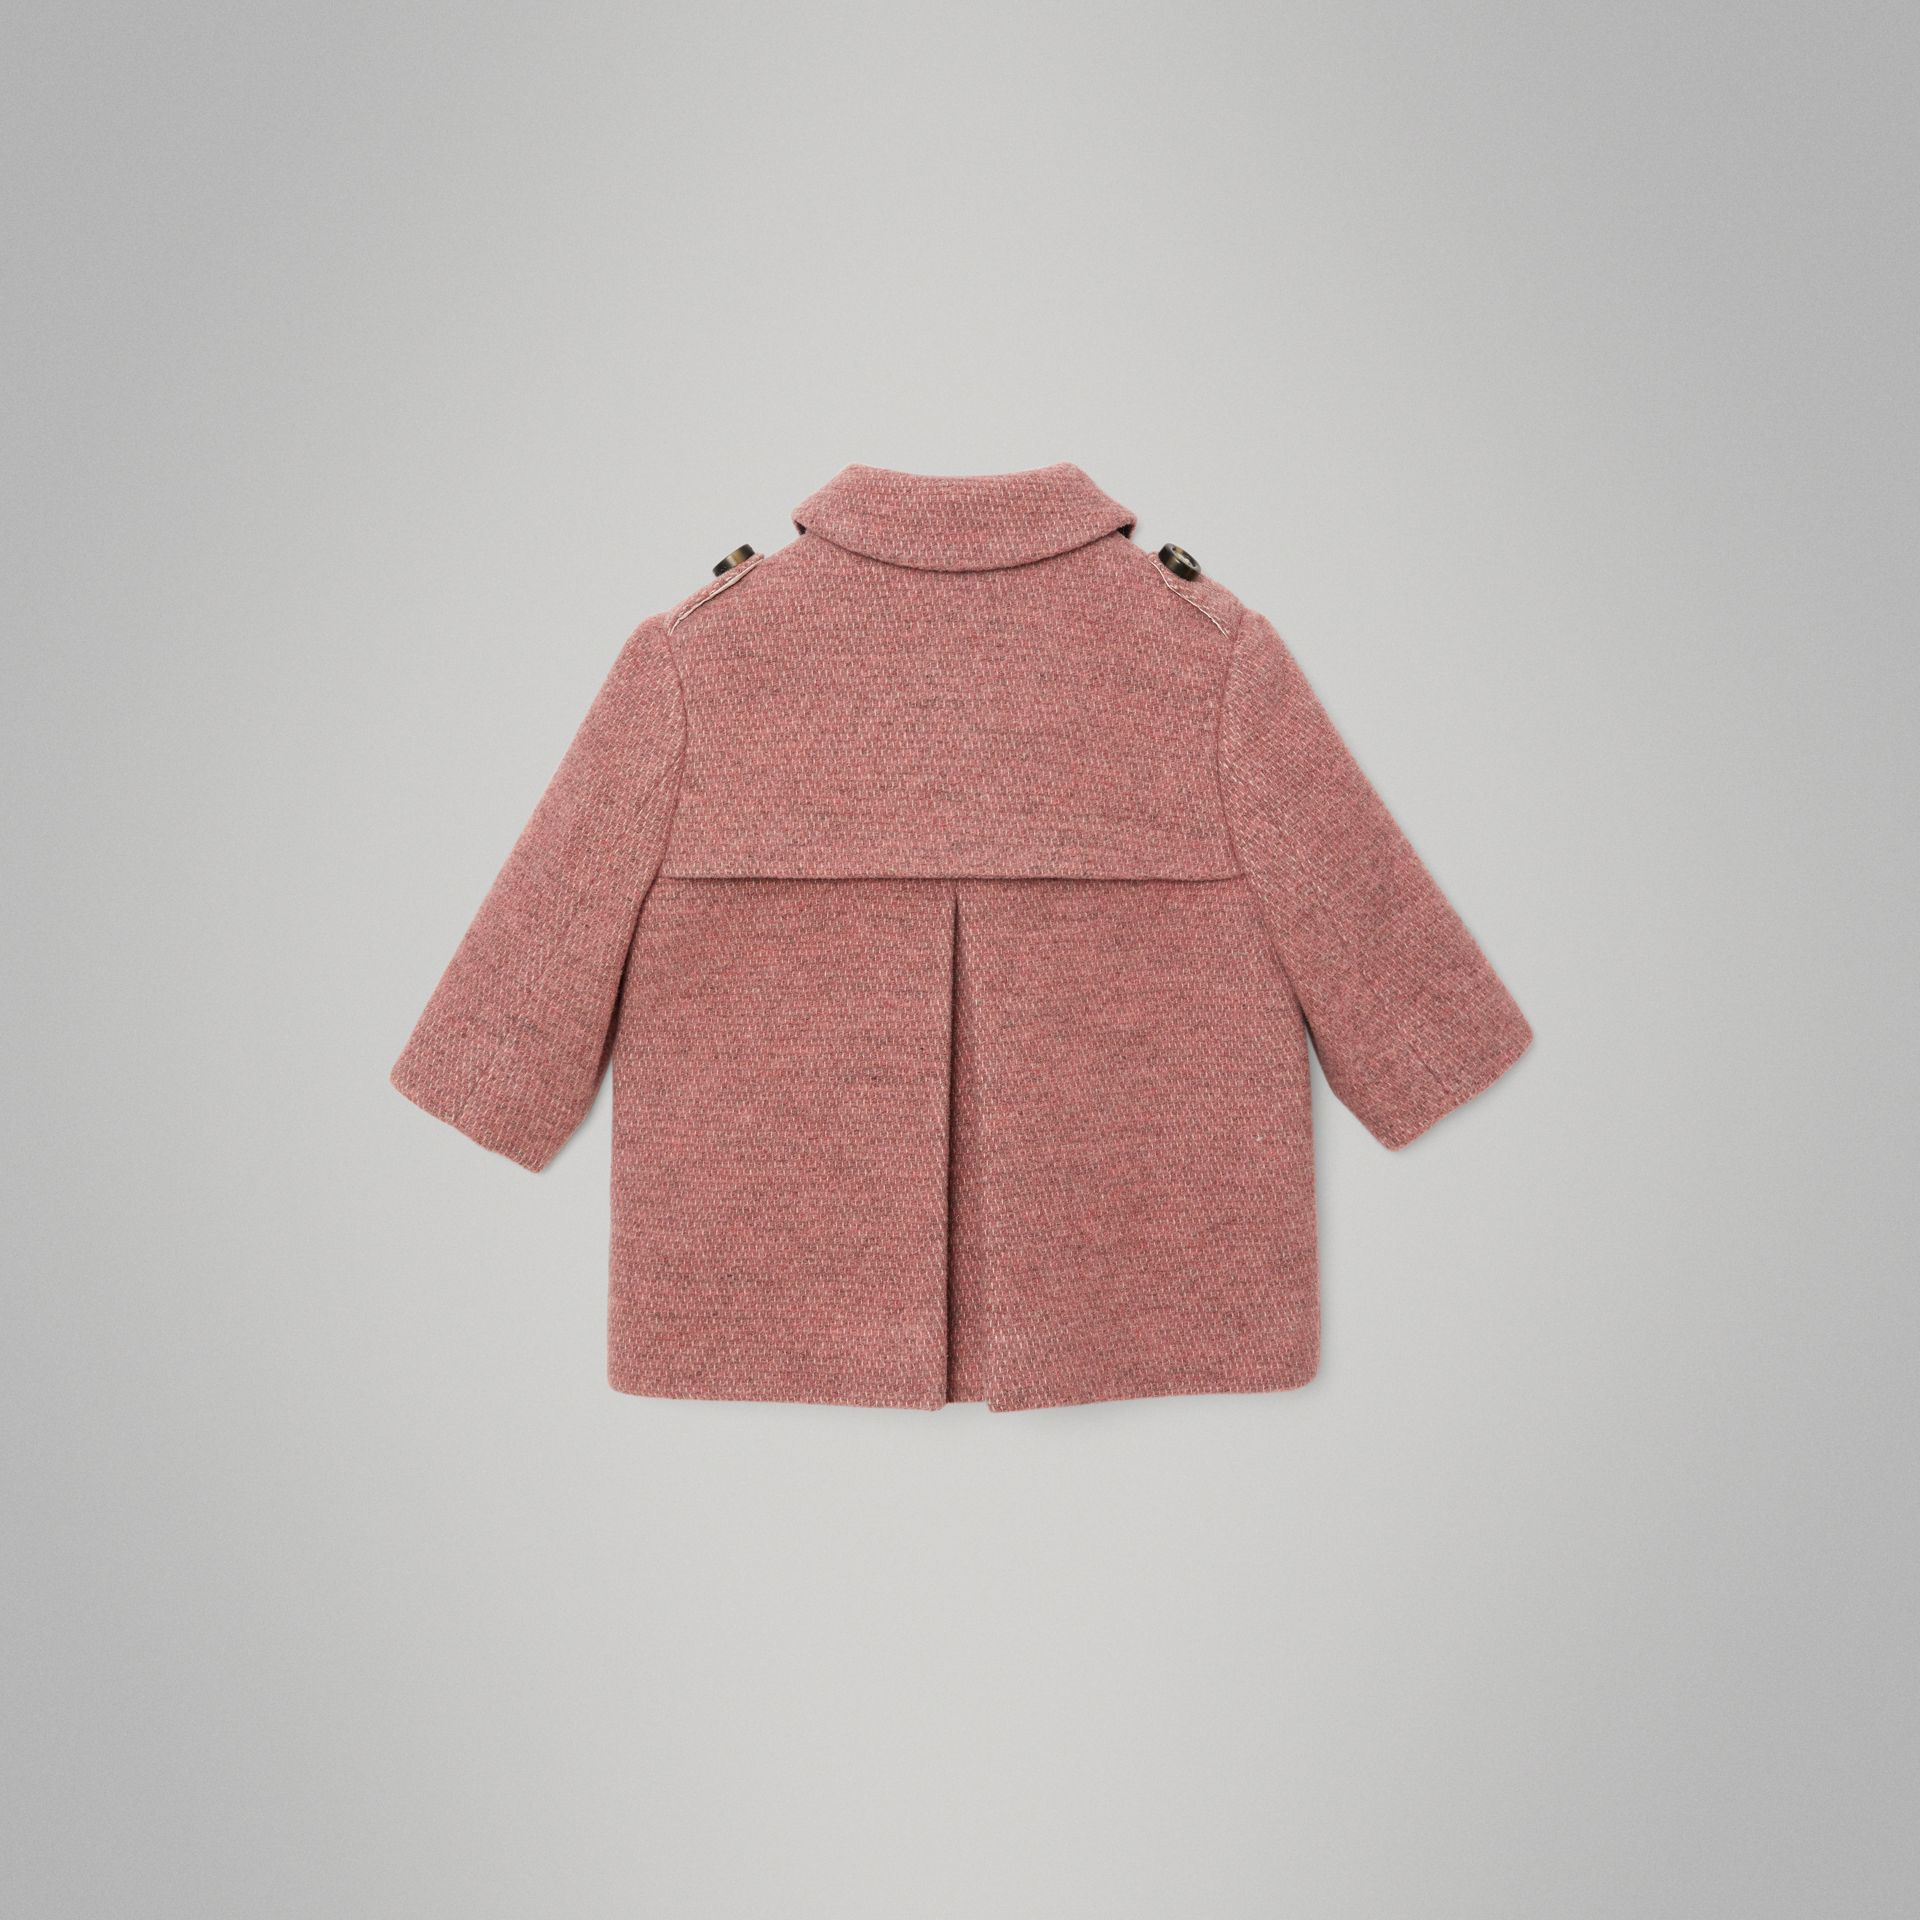 Wool Blend Pea Coat in Rose Pink Melange - Children | Burberry United States - gallery image 3